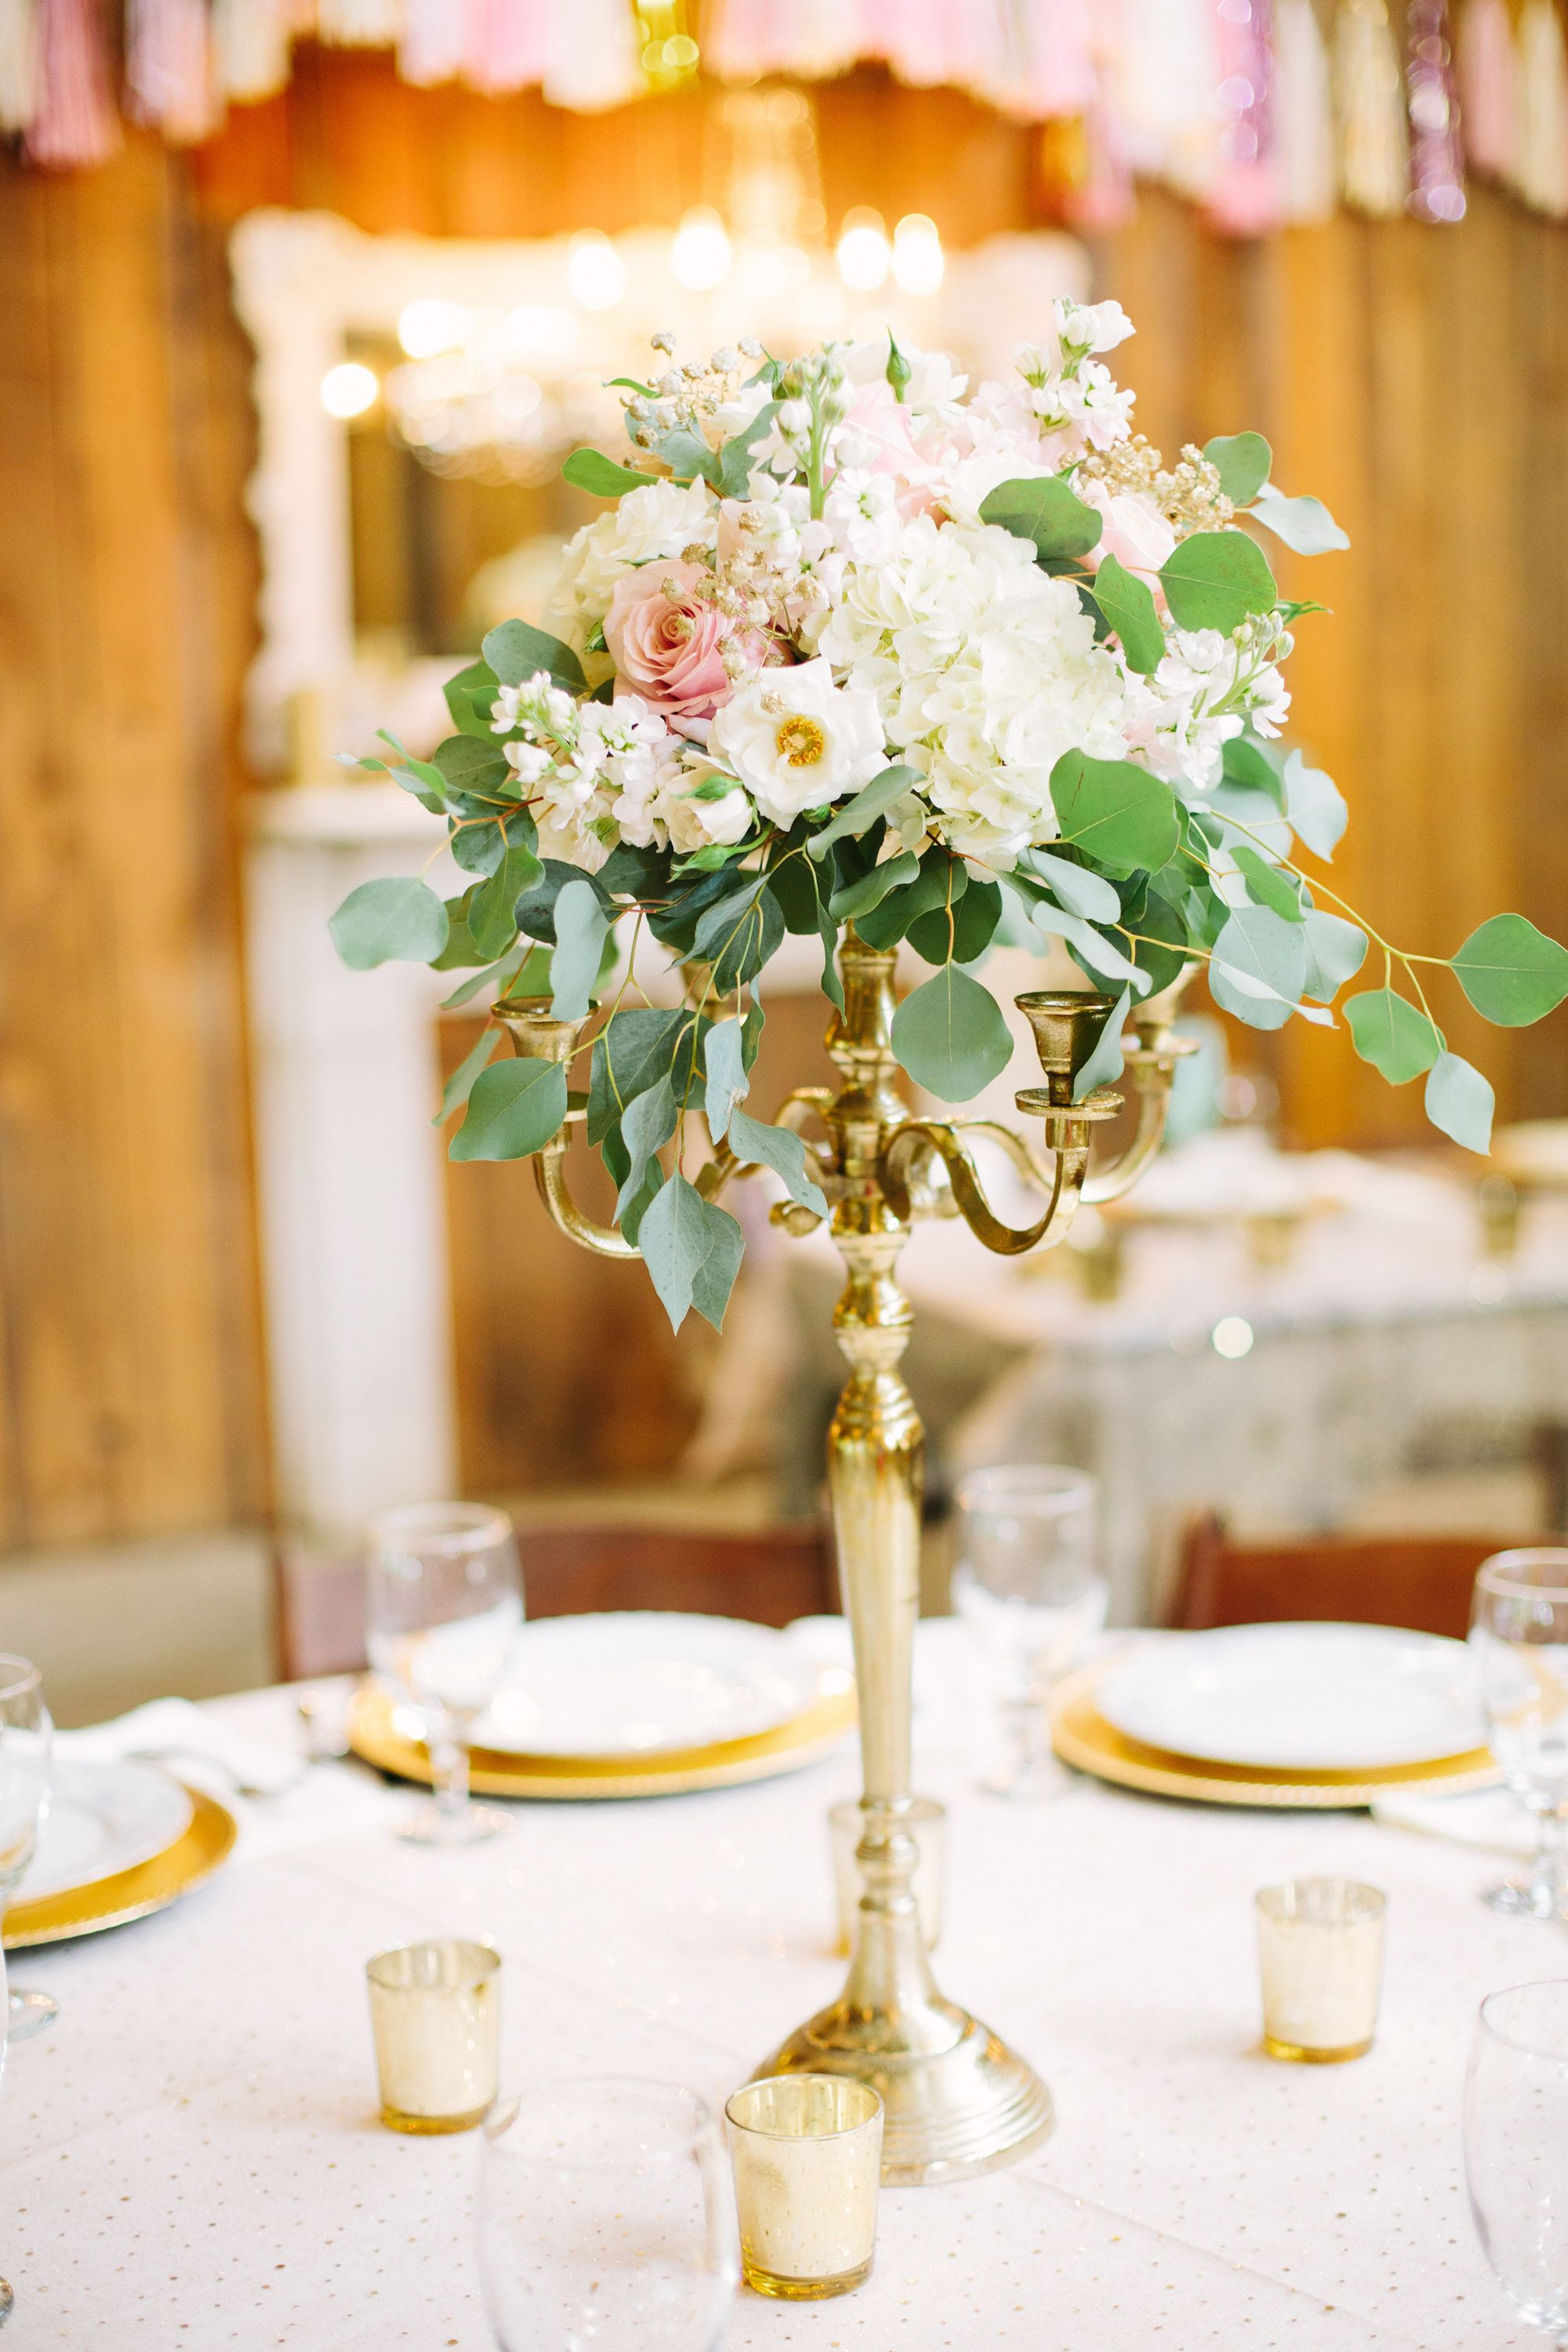 Gold Candelabra Centerpiece With Blush and Ivory Flowers More